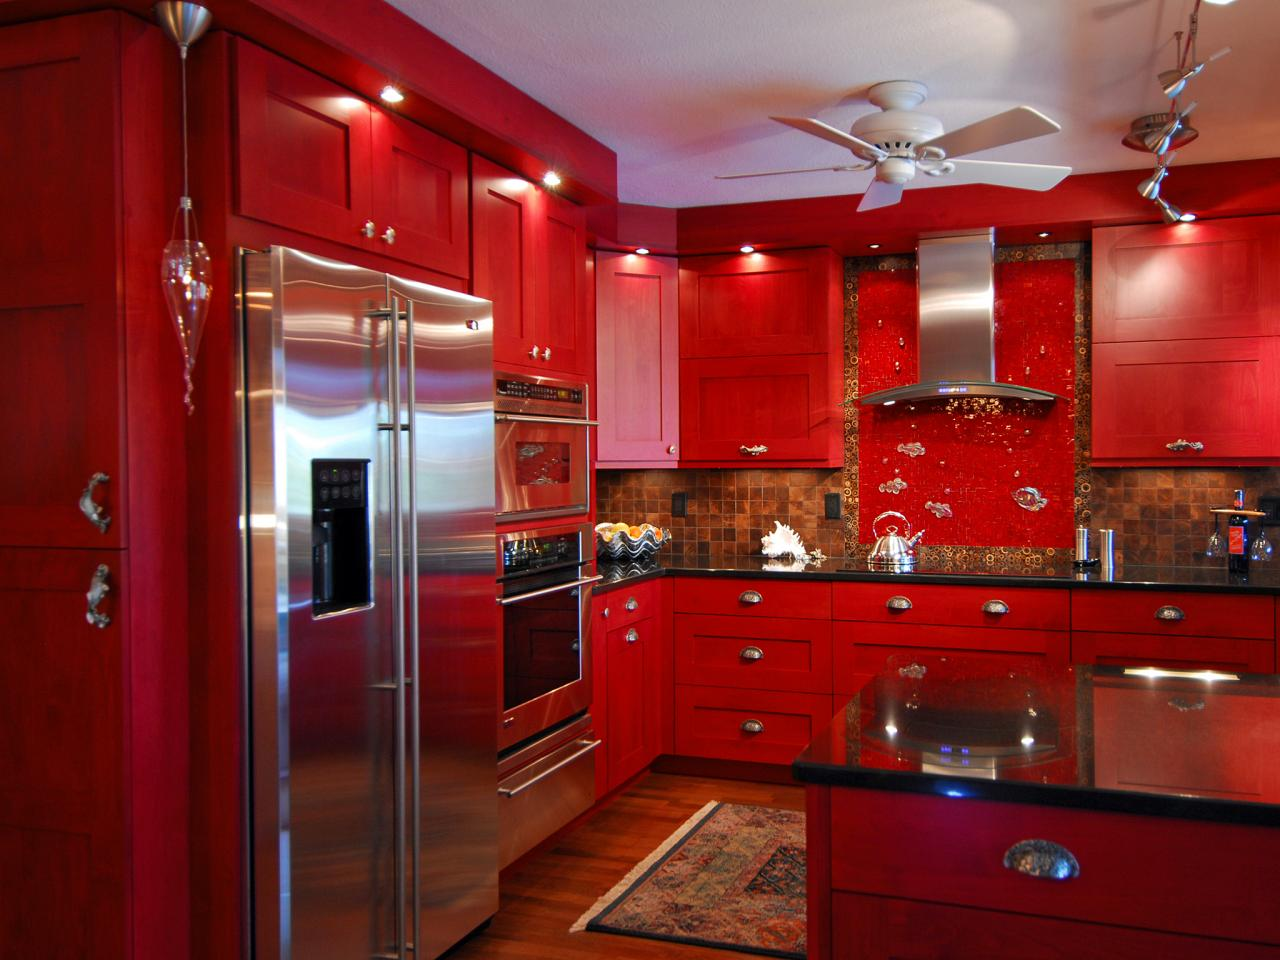 Red Kitchen photo - 4